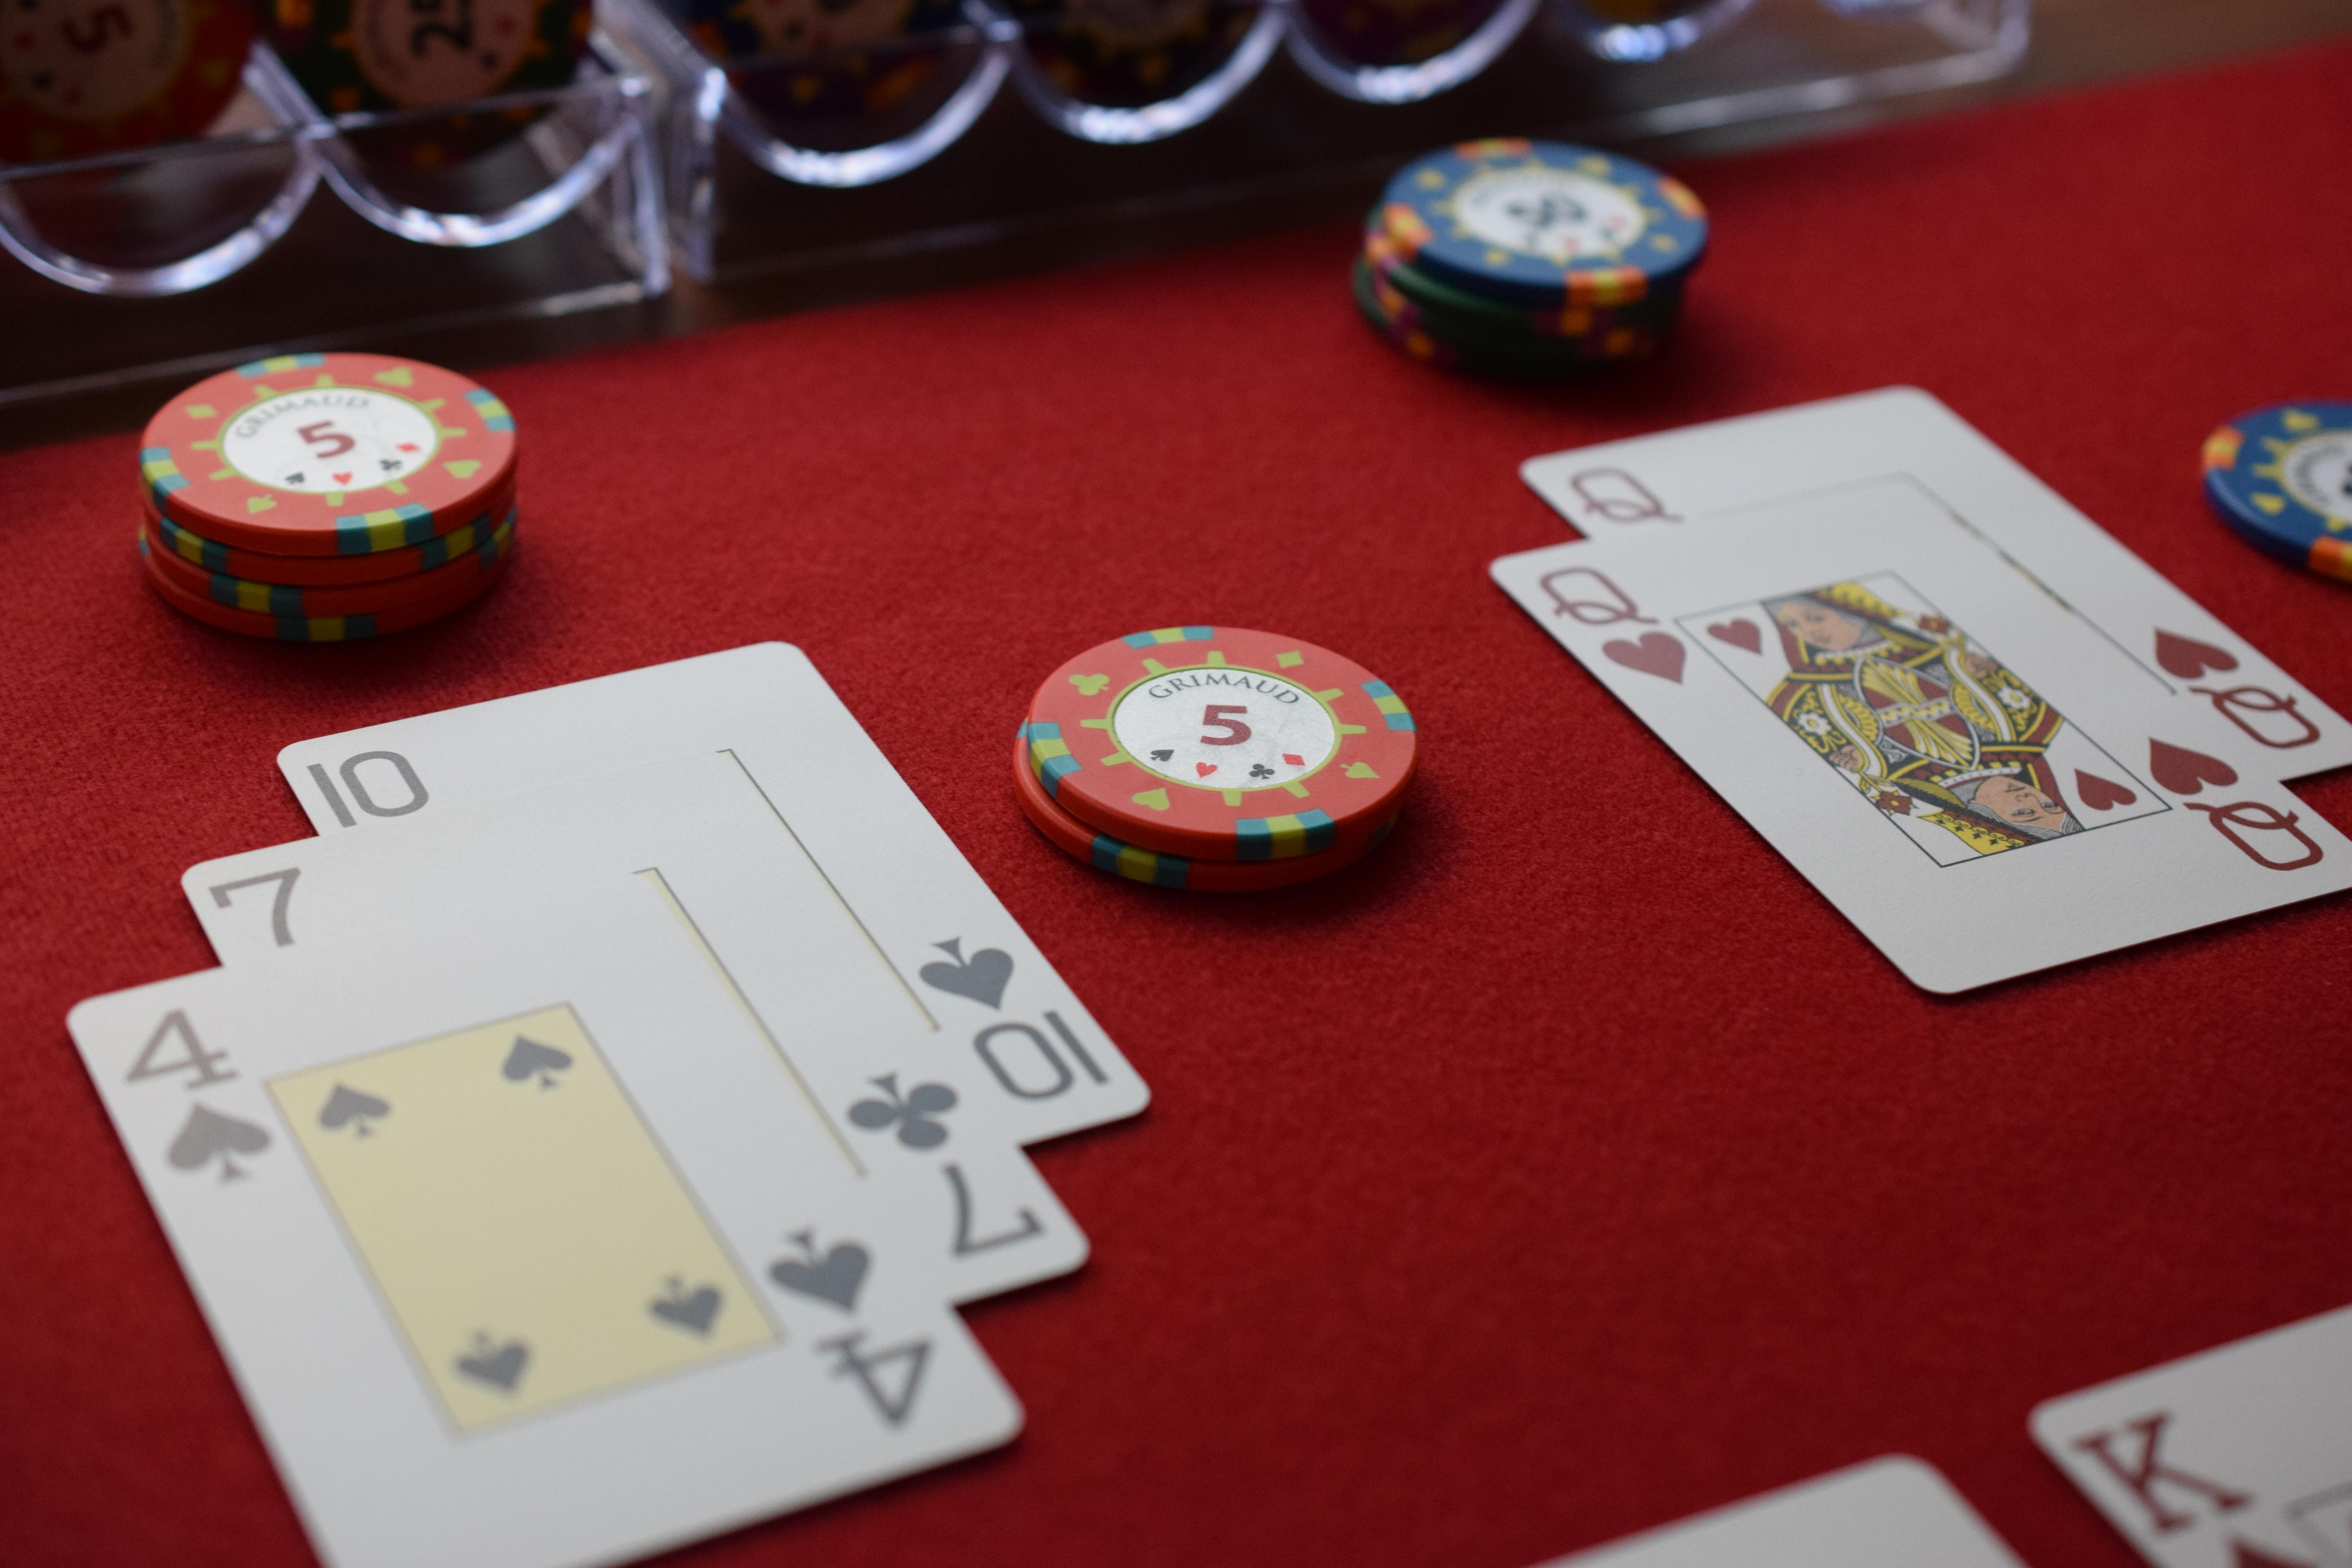 Race horse betting rules in poker world coins bitcoins for free